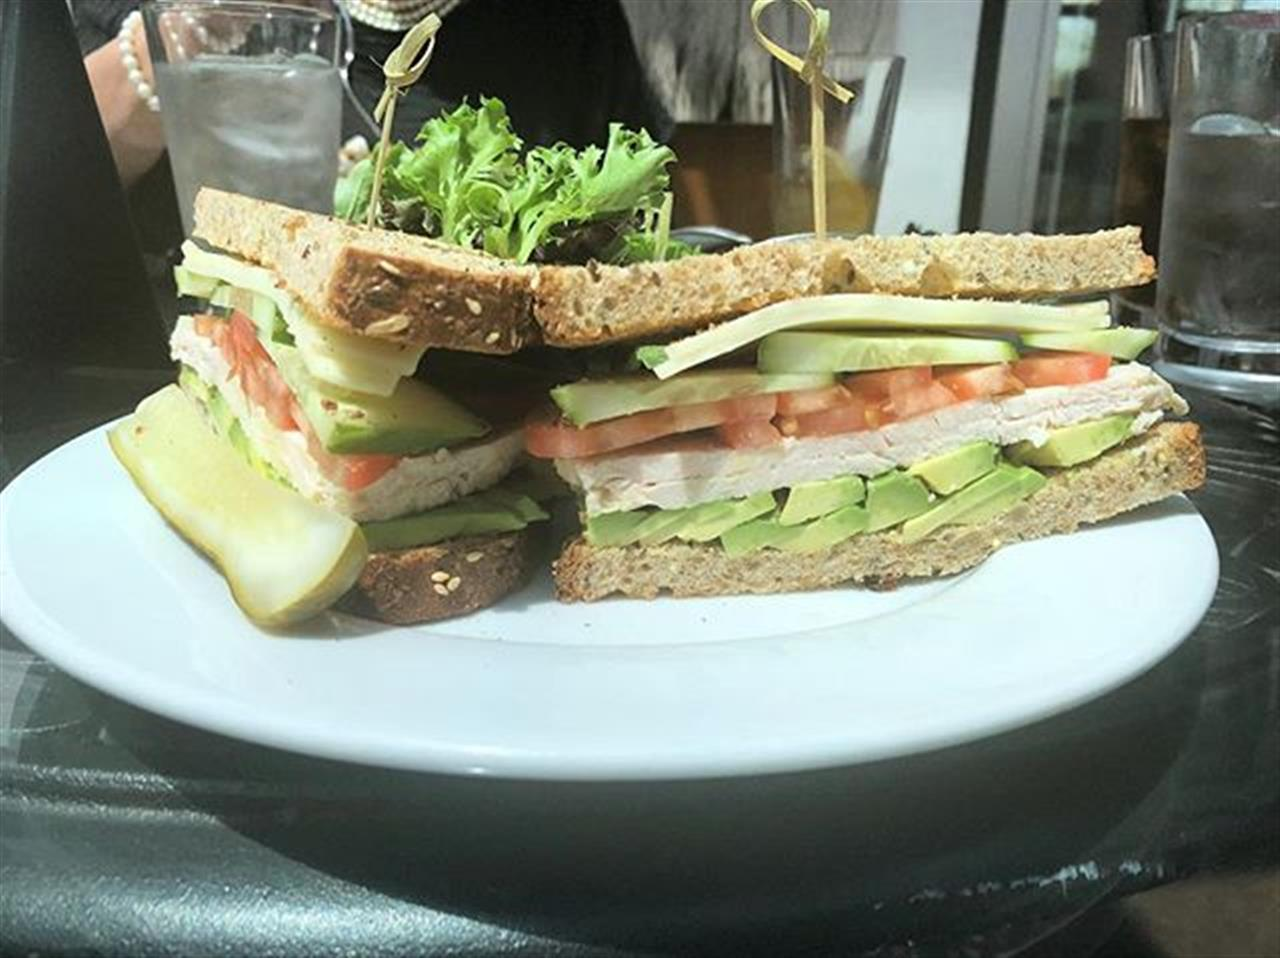 Already thinking about a trip back to @jolanescafe for another taste of this delicious #turkeysandwich .. .. #leadingrelocal #glenview #chicagosuburbs #chicago #northshore #eatlocal #bairdwarner #chicagorealestate #glenviewrealestate #realestate #lunch #lowcarb #avocado #cucumber #tomato #turkey #protein #proteinlunch #healthyfood #healtylunch #relocation #chicagorelocation #jolanescafe #livelocal